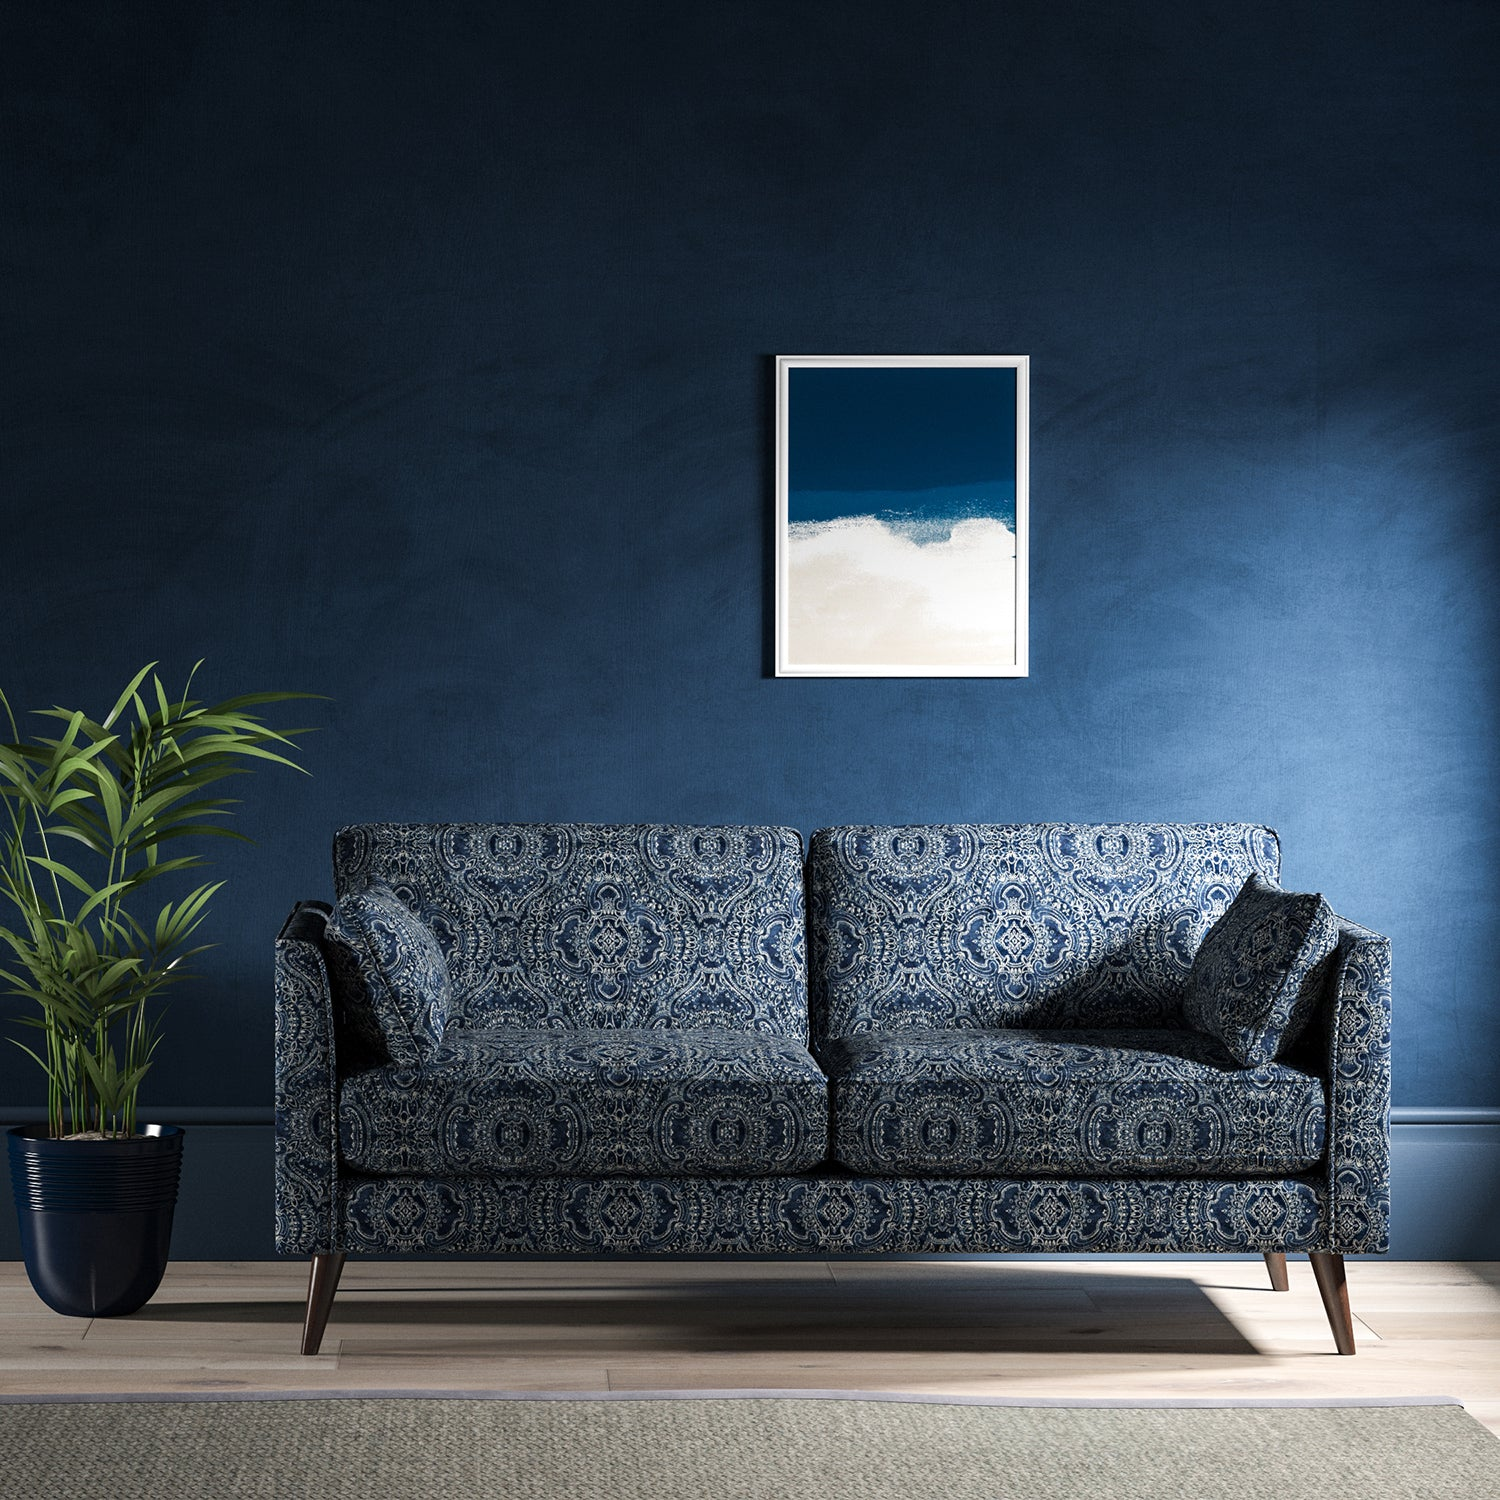 Sofa upholstered in a indigo blue velvet upholstery fabric with intricate jewel like design